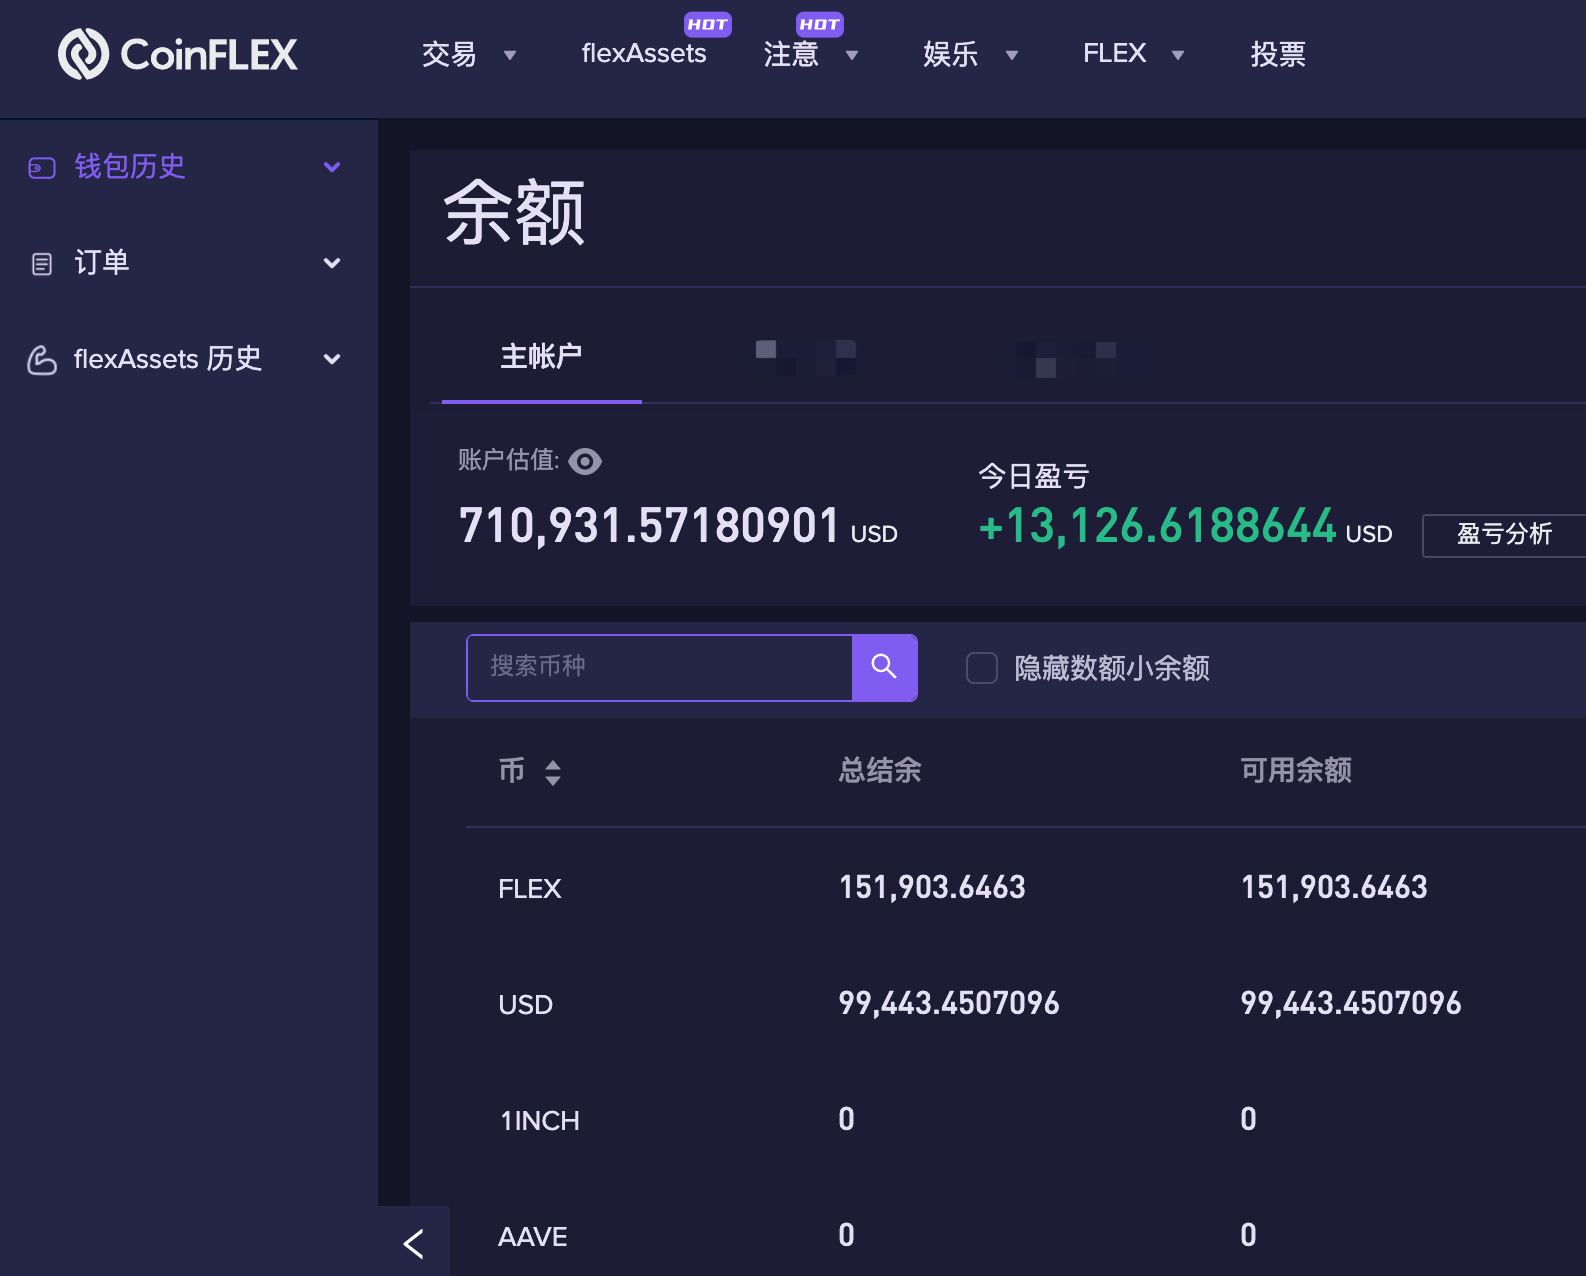 Trade1 1.1.10 Basics of how to trade on CoinFLEX